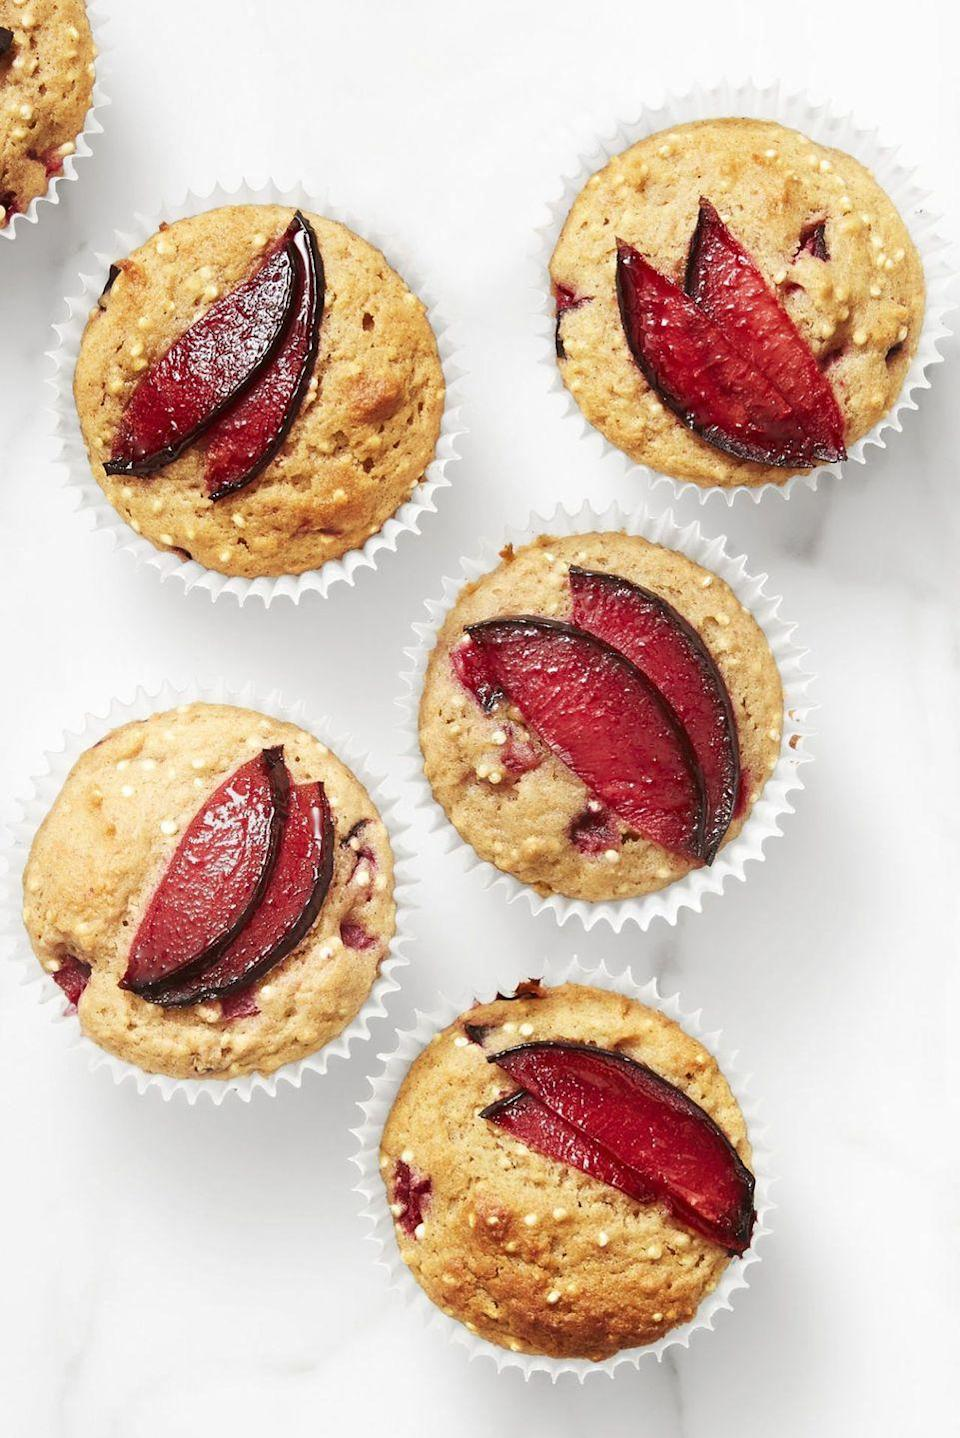 "<p>The quinoa in these robustly flavored muffins gives them a nice punch of protein. </p><p><em>Get the recipe at <a href=""https://www.goodhousekeeping.com/food-recipes/a44752/spiced-plum-quinoa-muffins-recipe/"" rel=""nofollow noopener"" target=""_blank"" data-ylk=""slk:Good Housekeeping"" class=""link rapid-noclick-resp"">Good Housekeeping</a>.</em></p>"